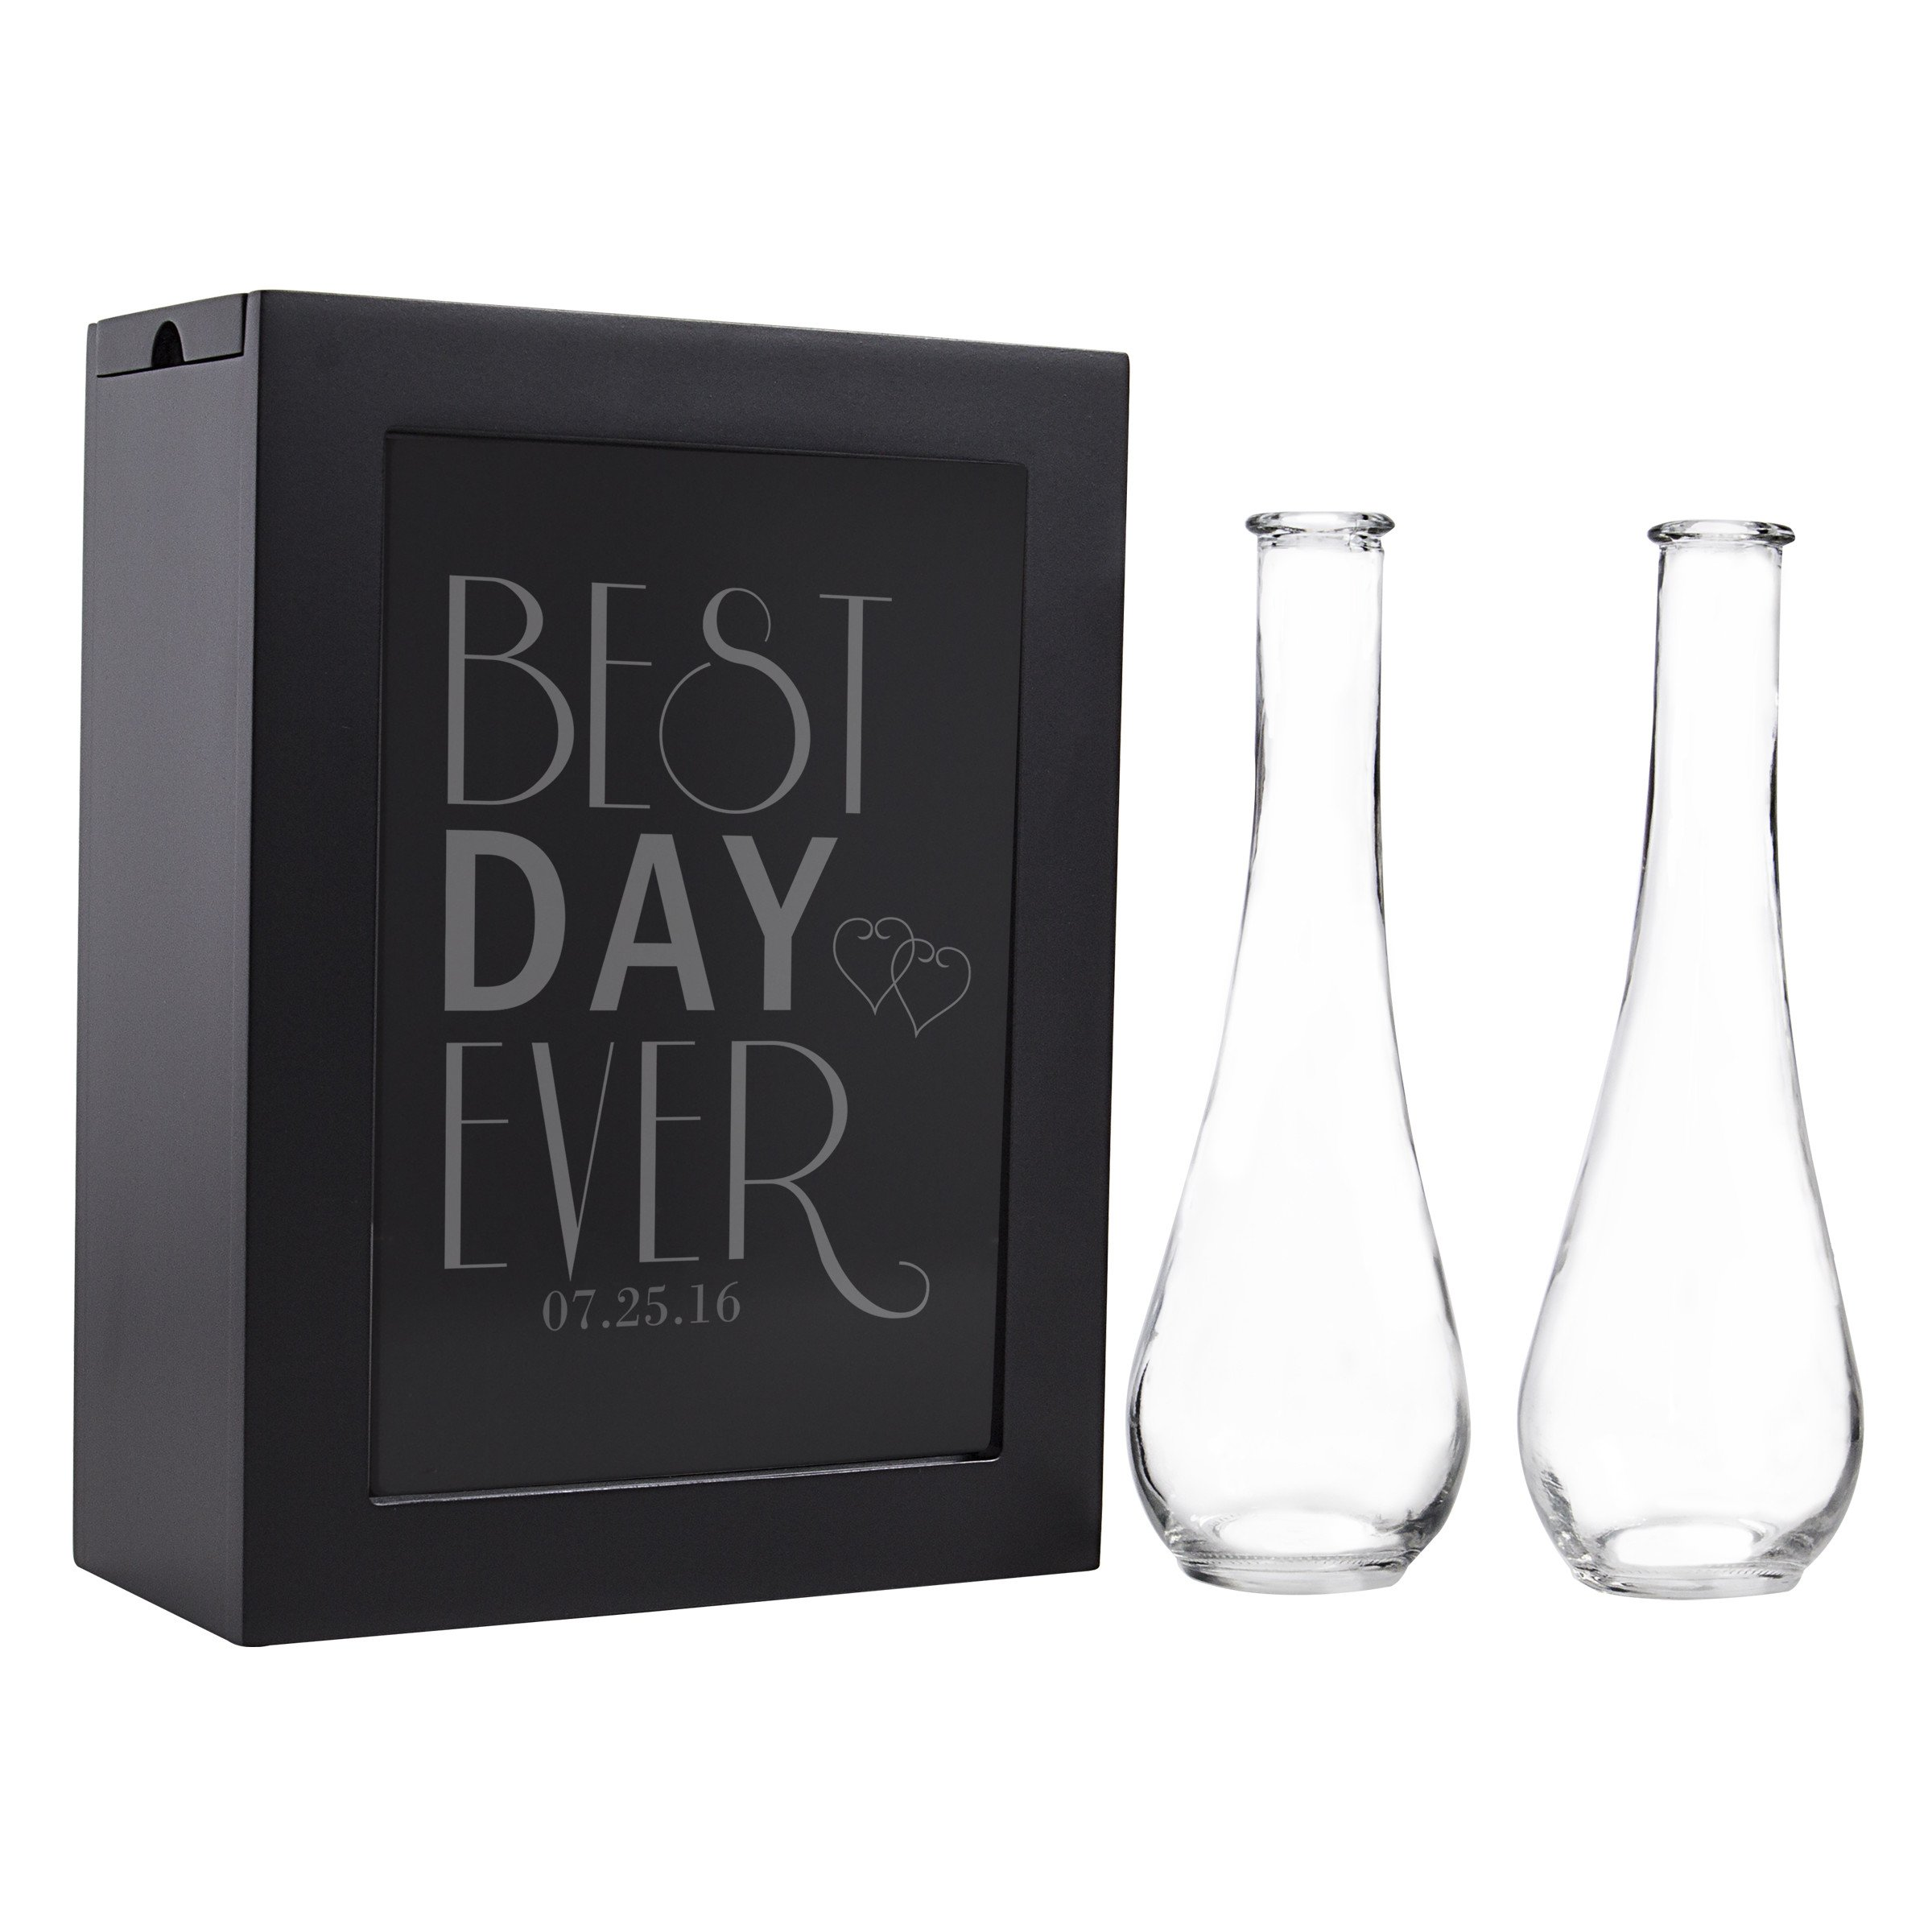 Cathy's Concepts Best Day Ever Unity sand Ceremony Shadow Box Set, Black with Date